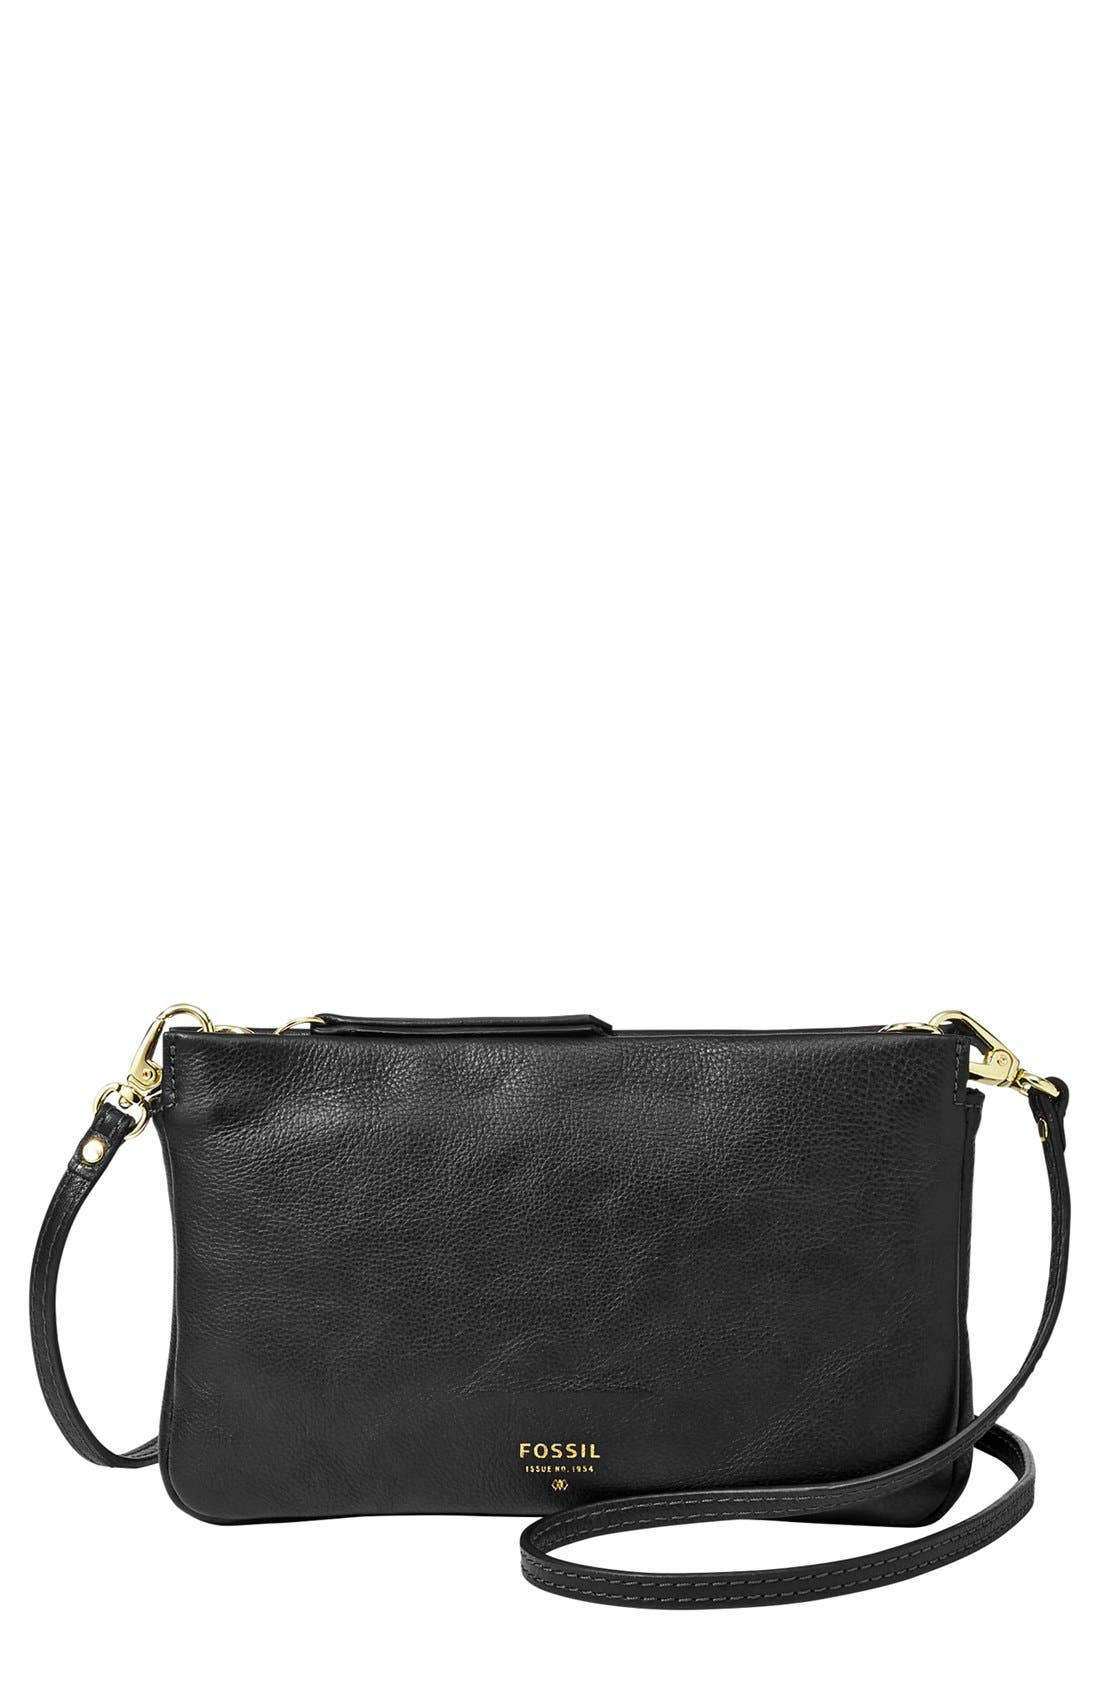 'Mini' Crossbody Bag,                             Main thumbnail 1, color,